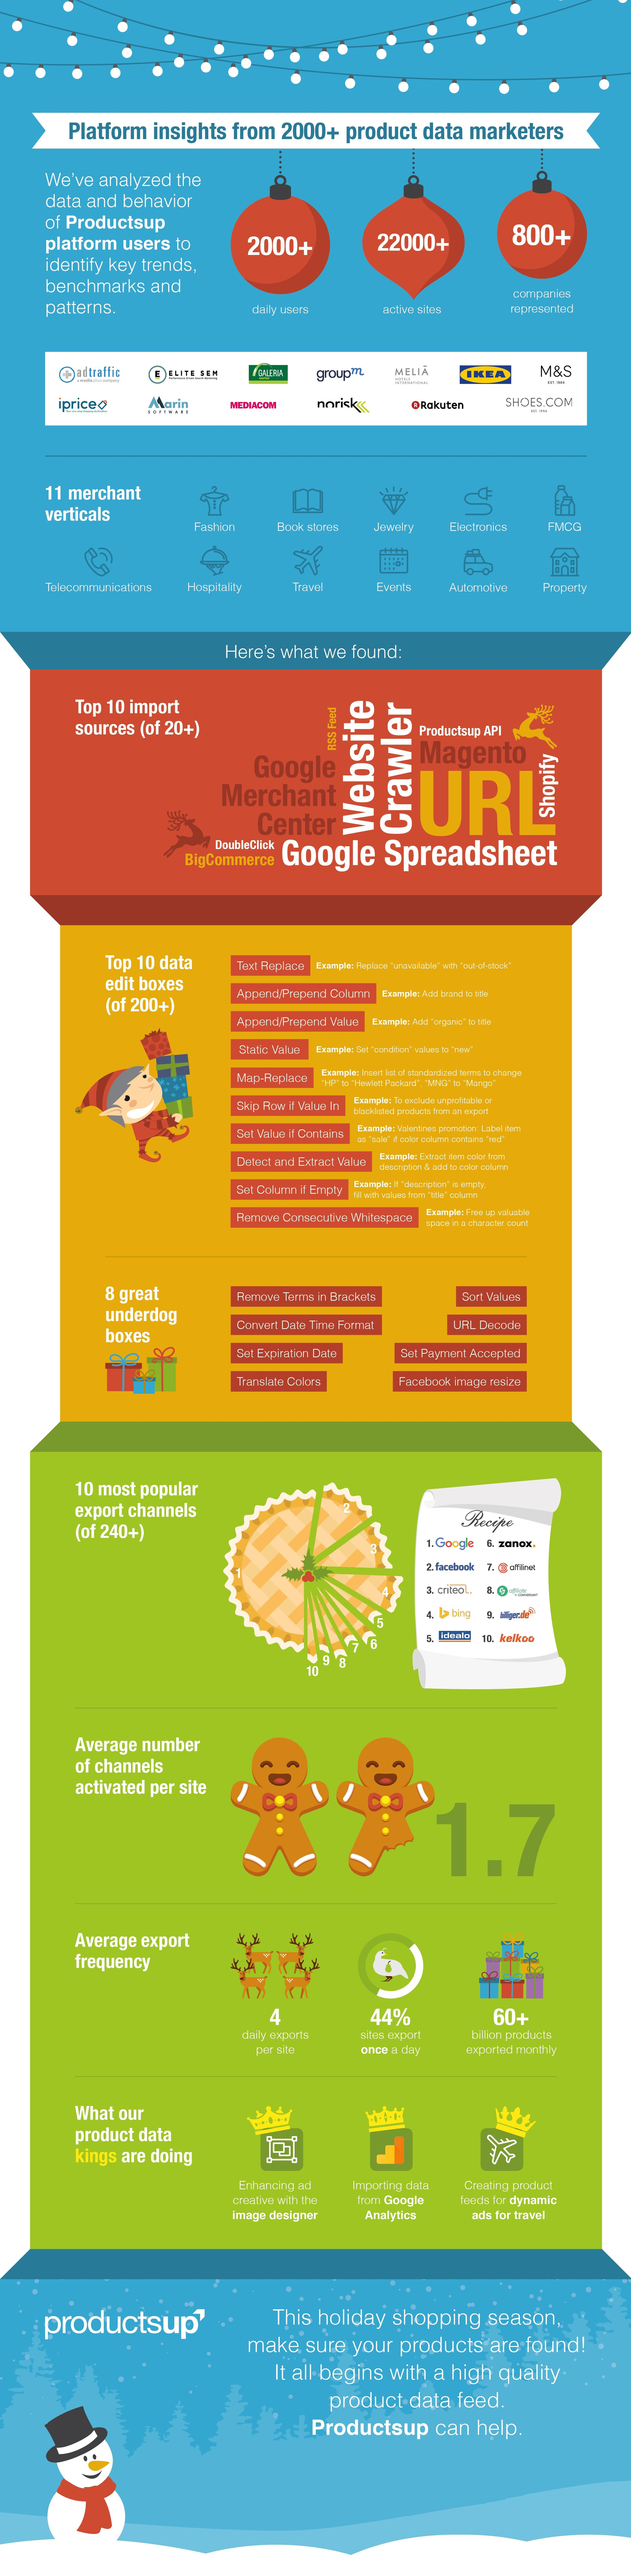 infographic-product-data-marketing-insights